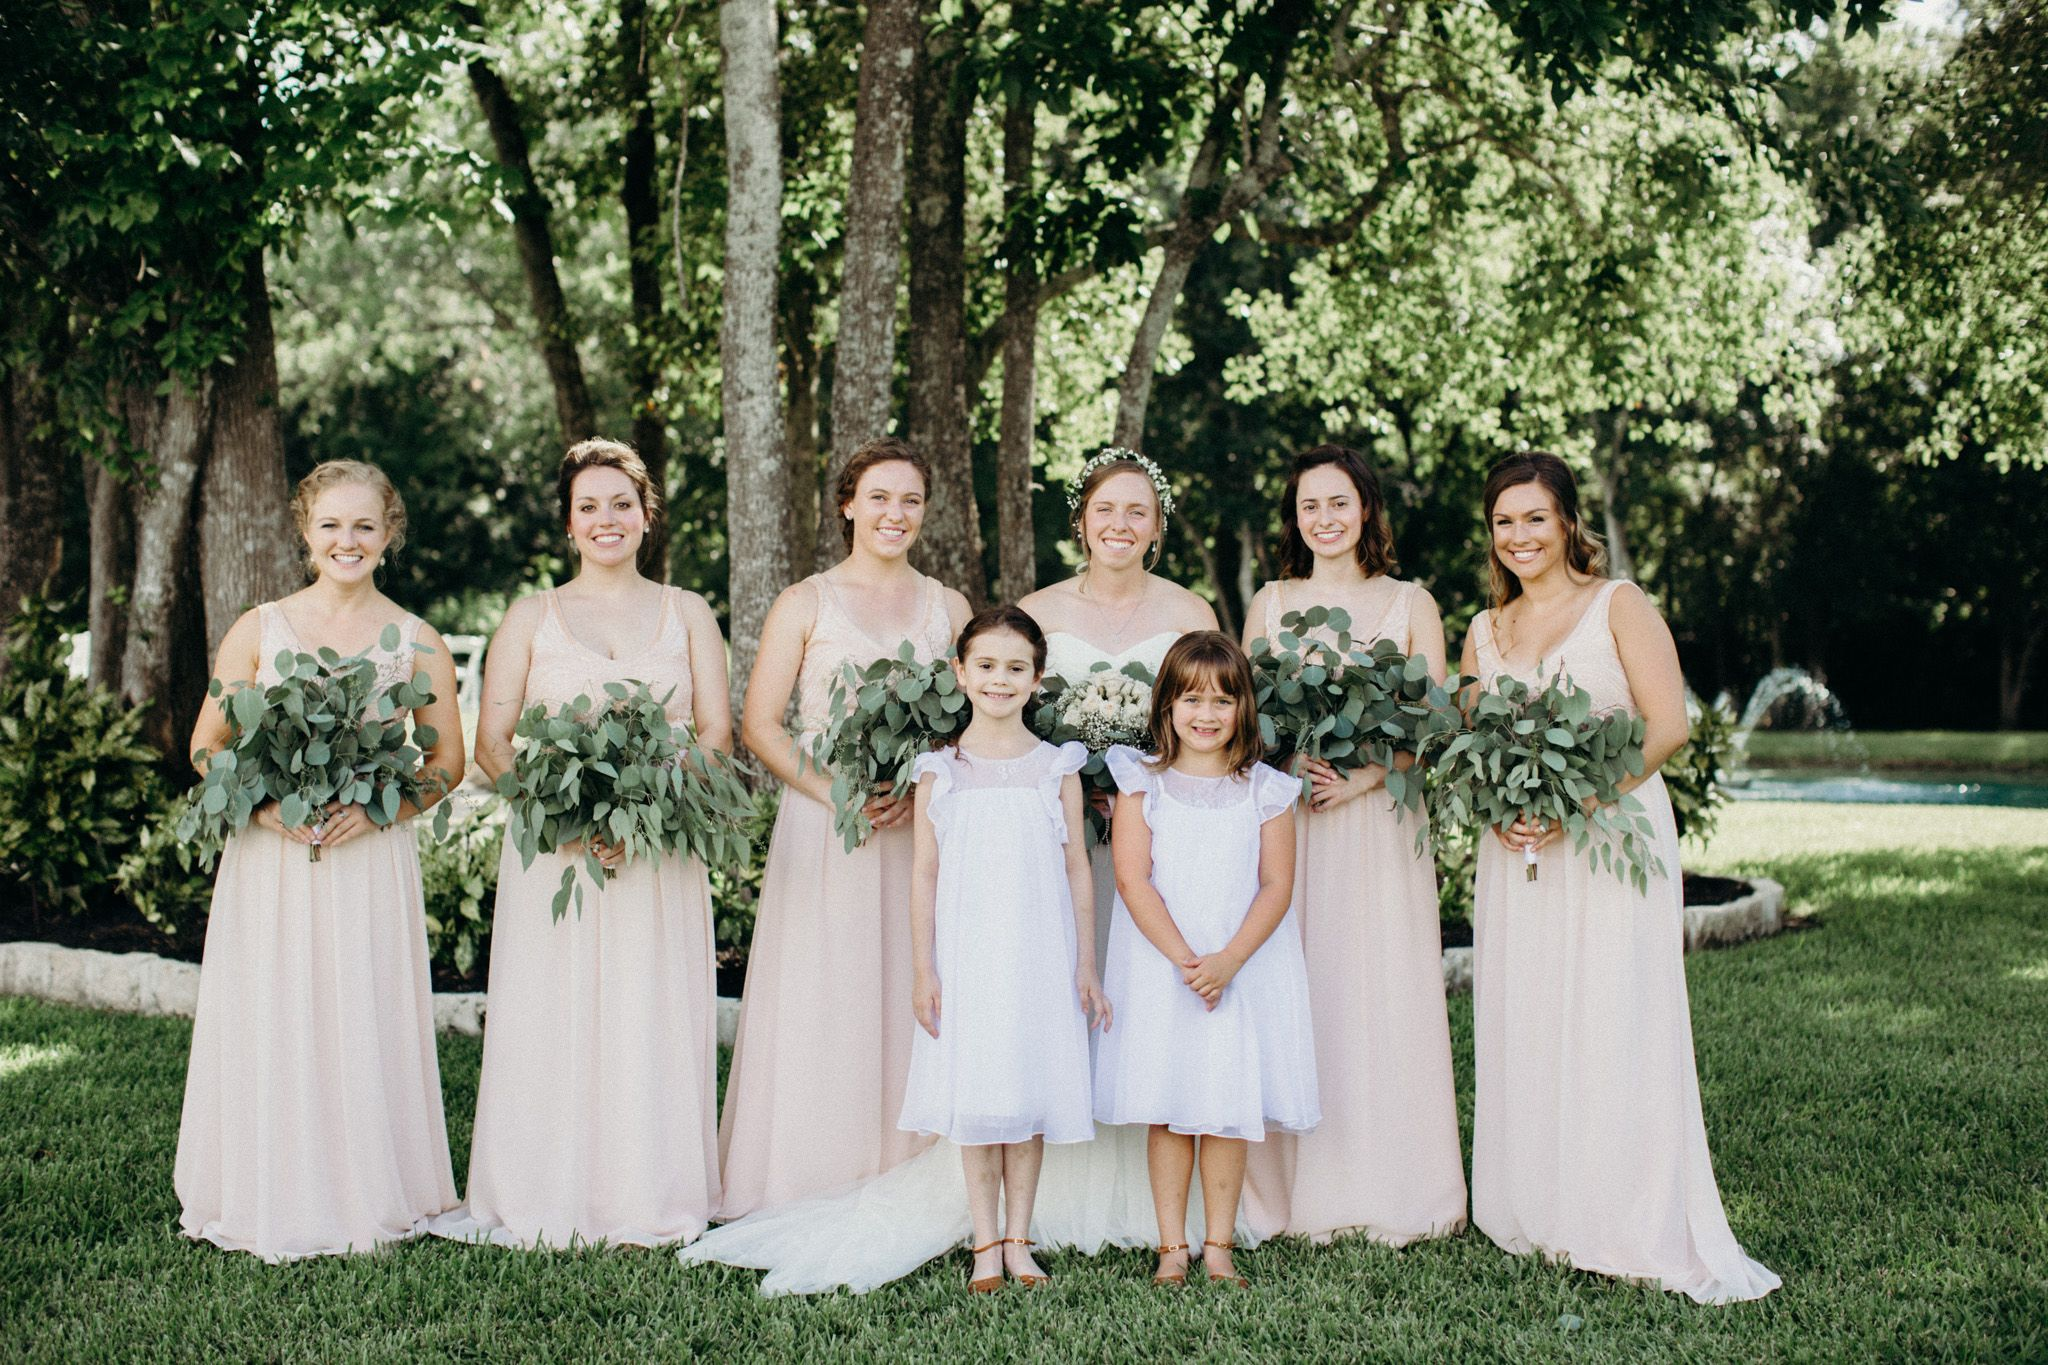 Long, Blush Bridesmaid Dresses And Bouquets With Tons Of